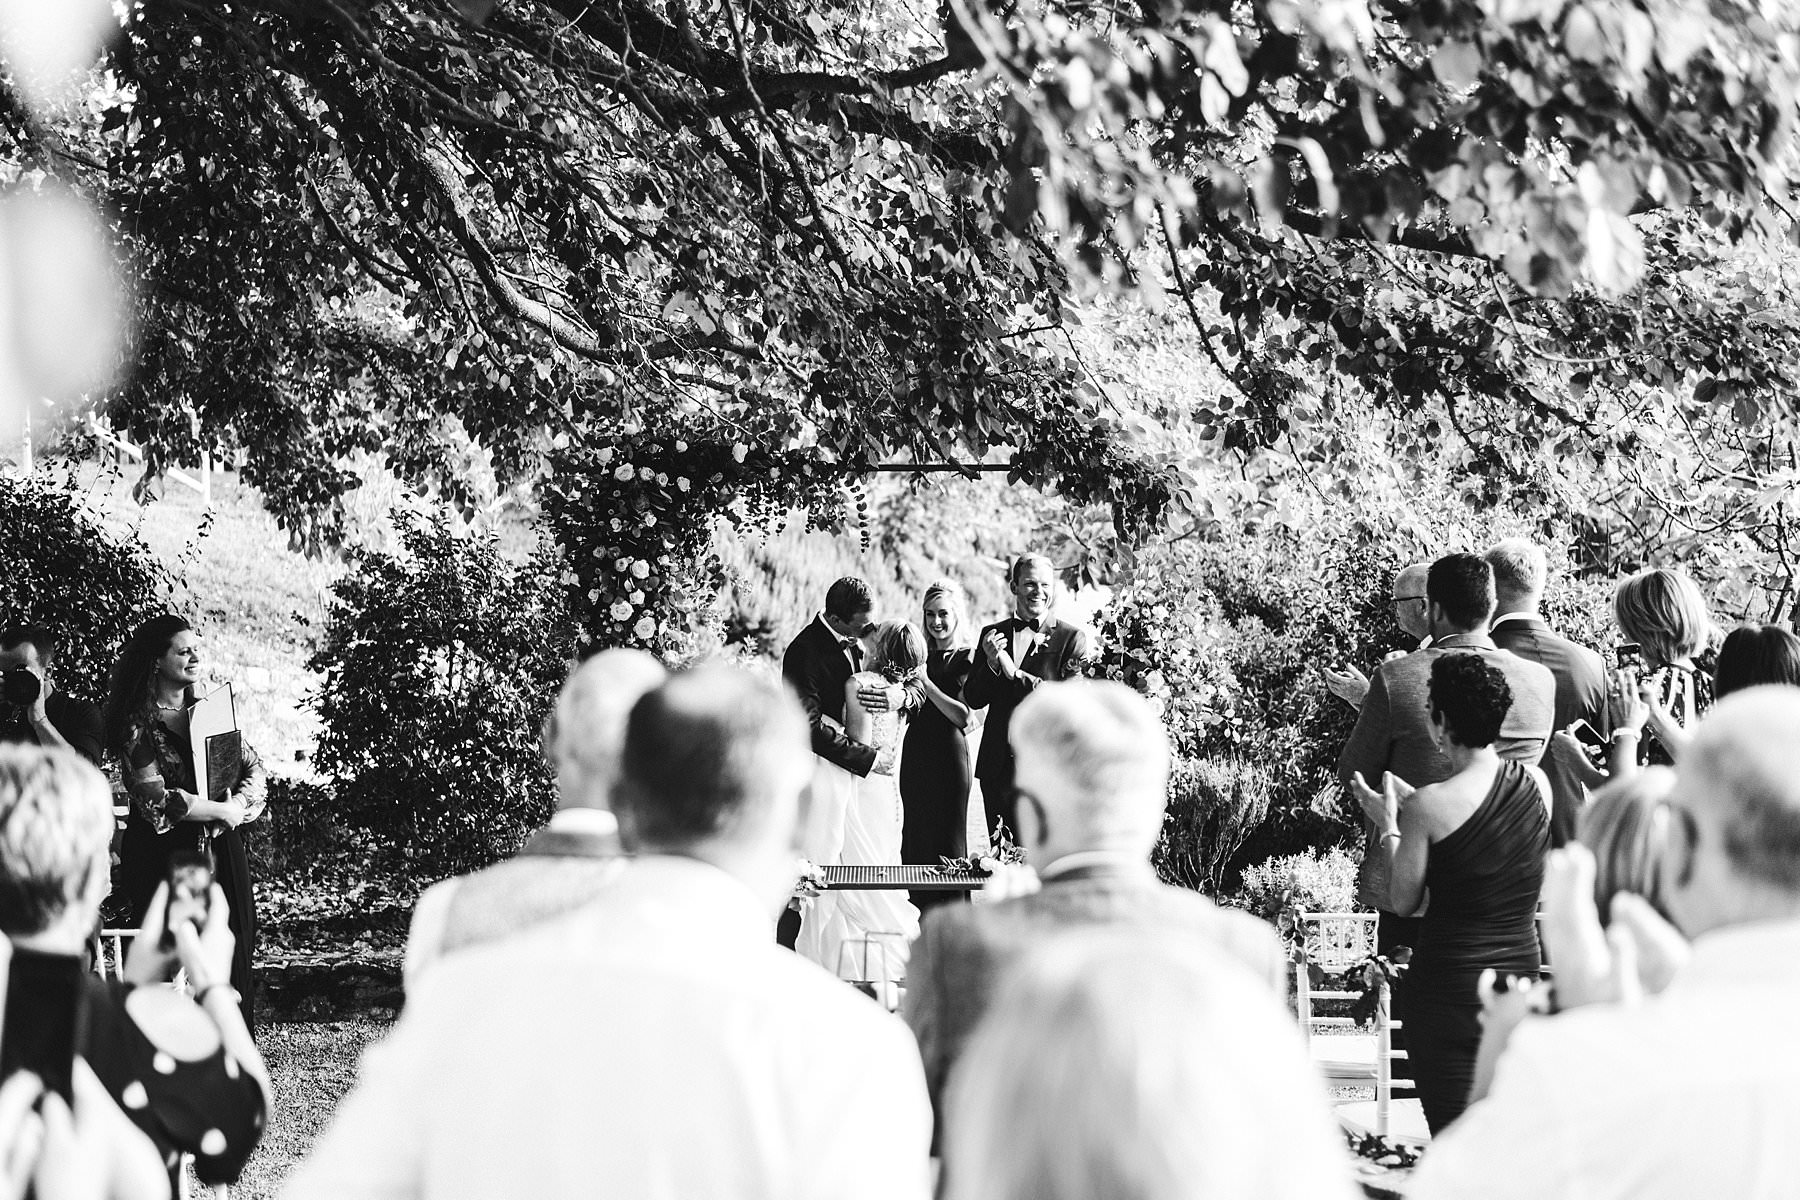 A special international wedding in the countryside of Umbria, Italy. Getting married in a foreign country, like Italy, often means gathering with friends and family members from all over the world. Sometimes the result is a real international wedding, such as this one that took place in the countryside of Umbria. Get inspired by the photographs of this very special event